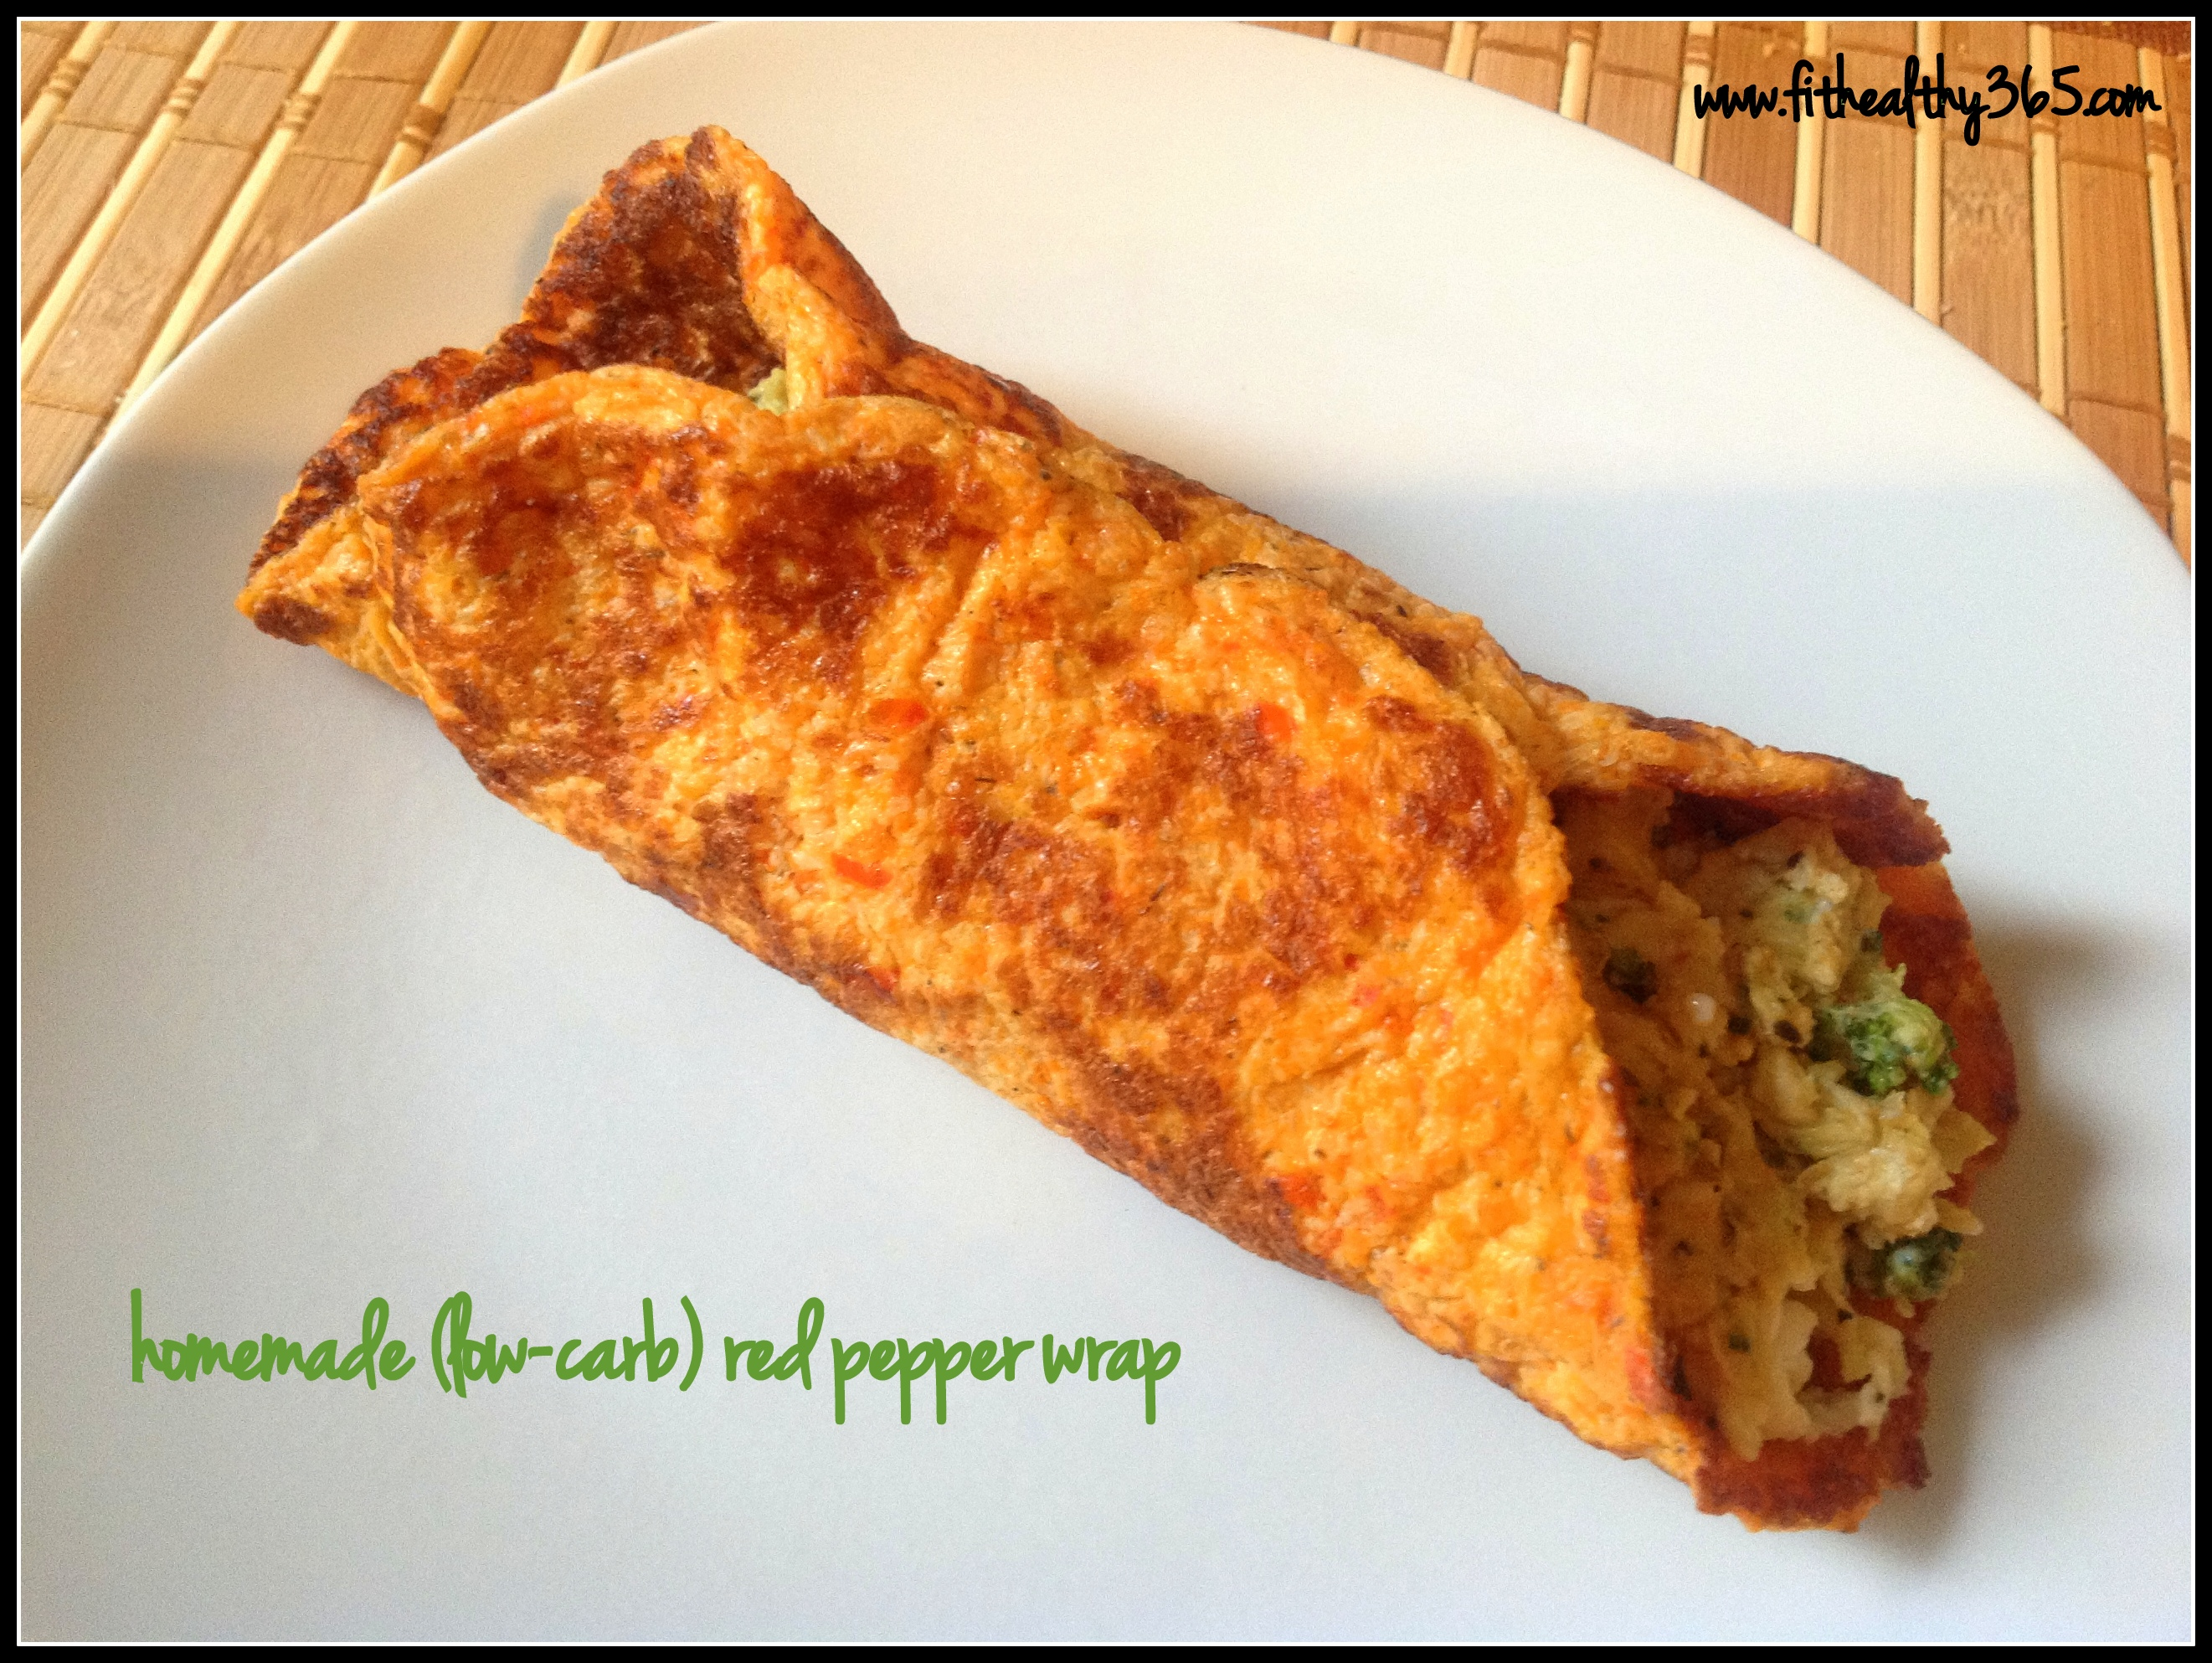 low carb red pepper wrap